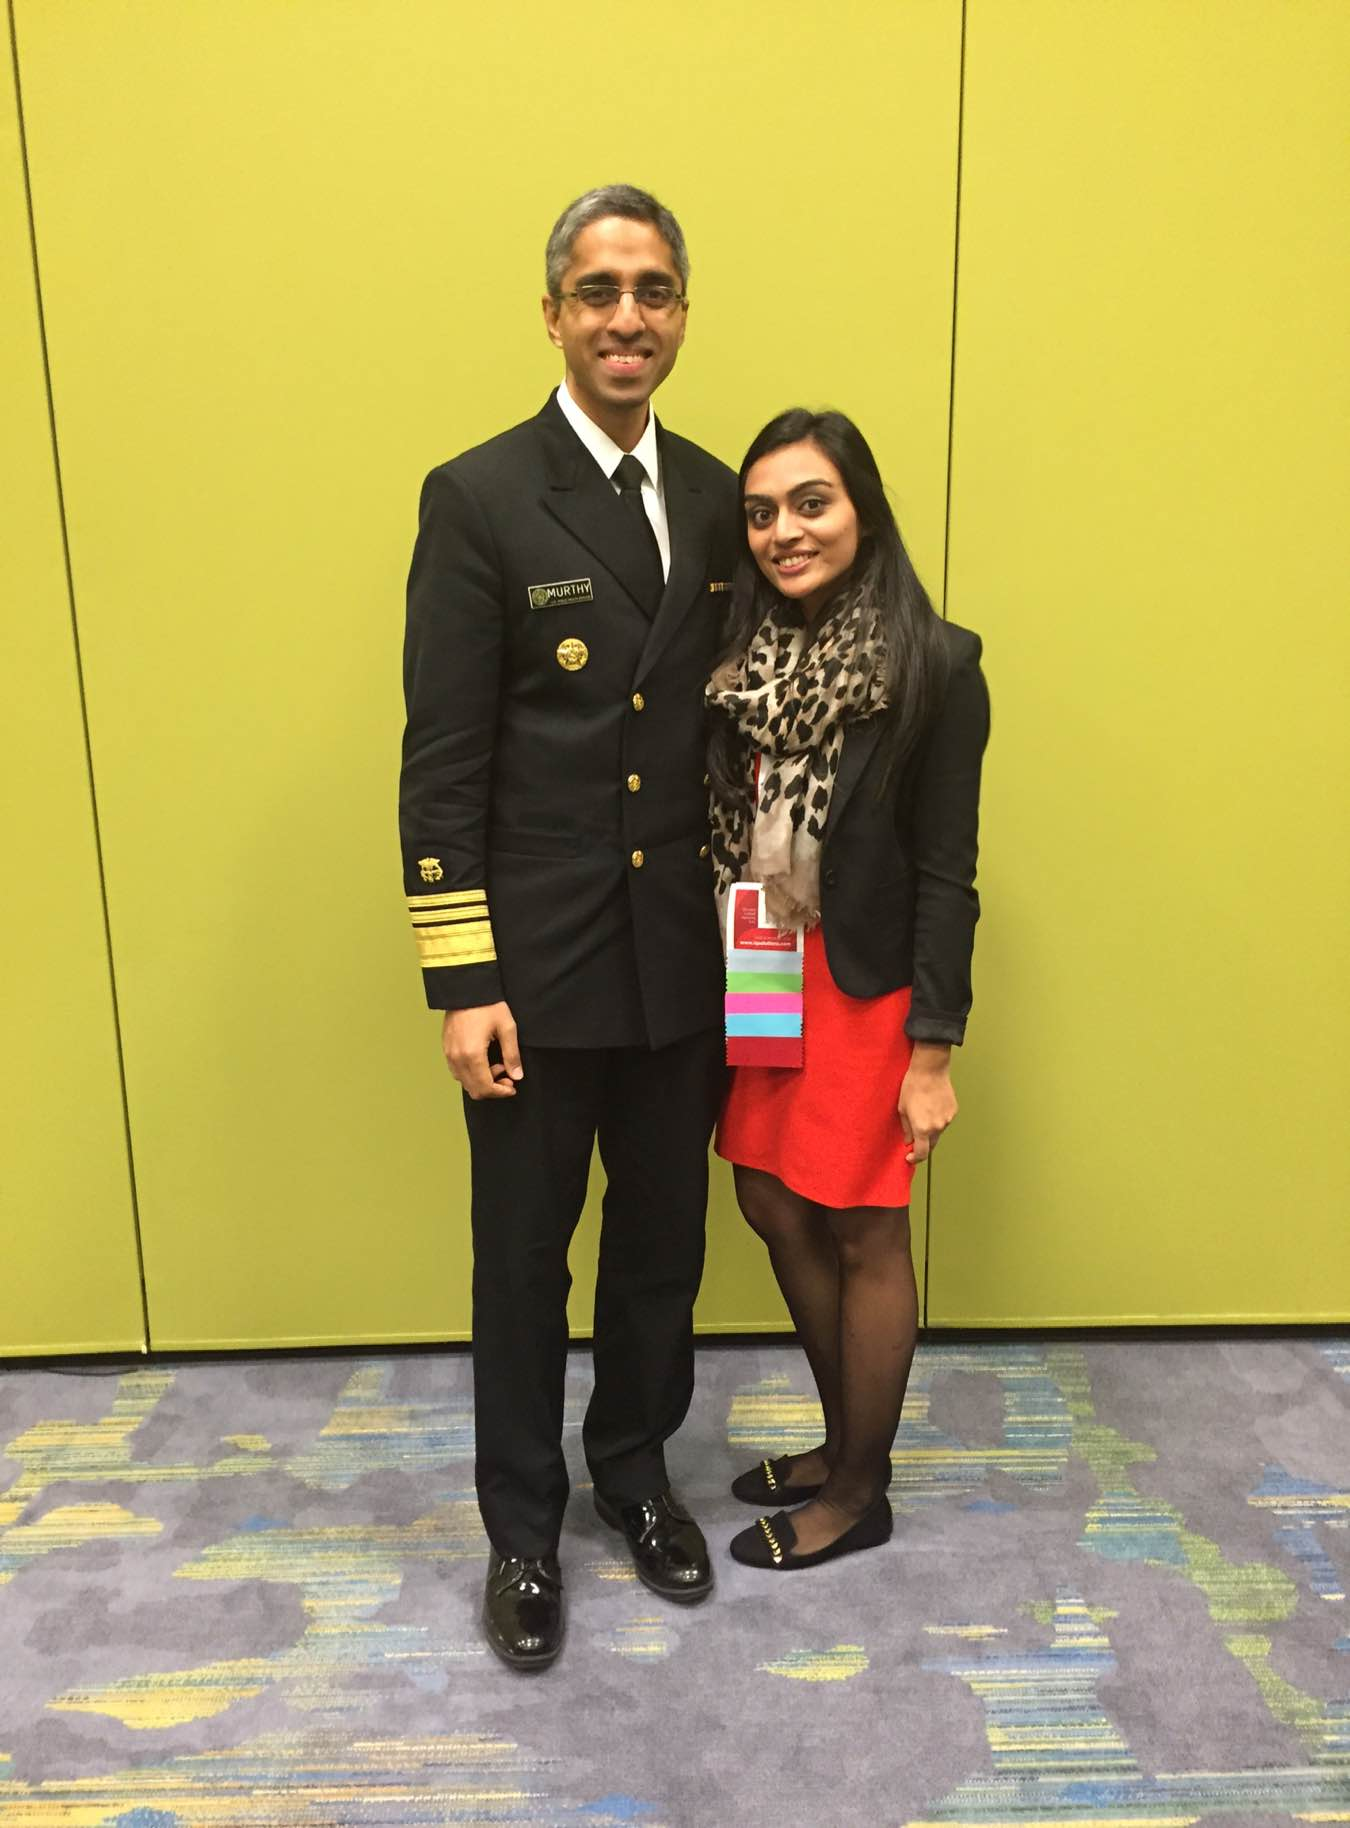 While at the American Public Health Association (APHA) 2015 Annual Meeting in Chicago, Kushali Amin, MPH '16, met Vivek Murthy, MD, surgeon general of the United States.